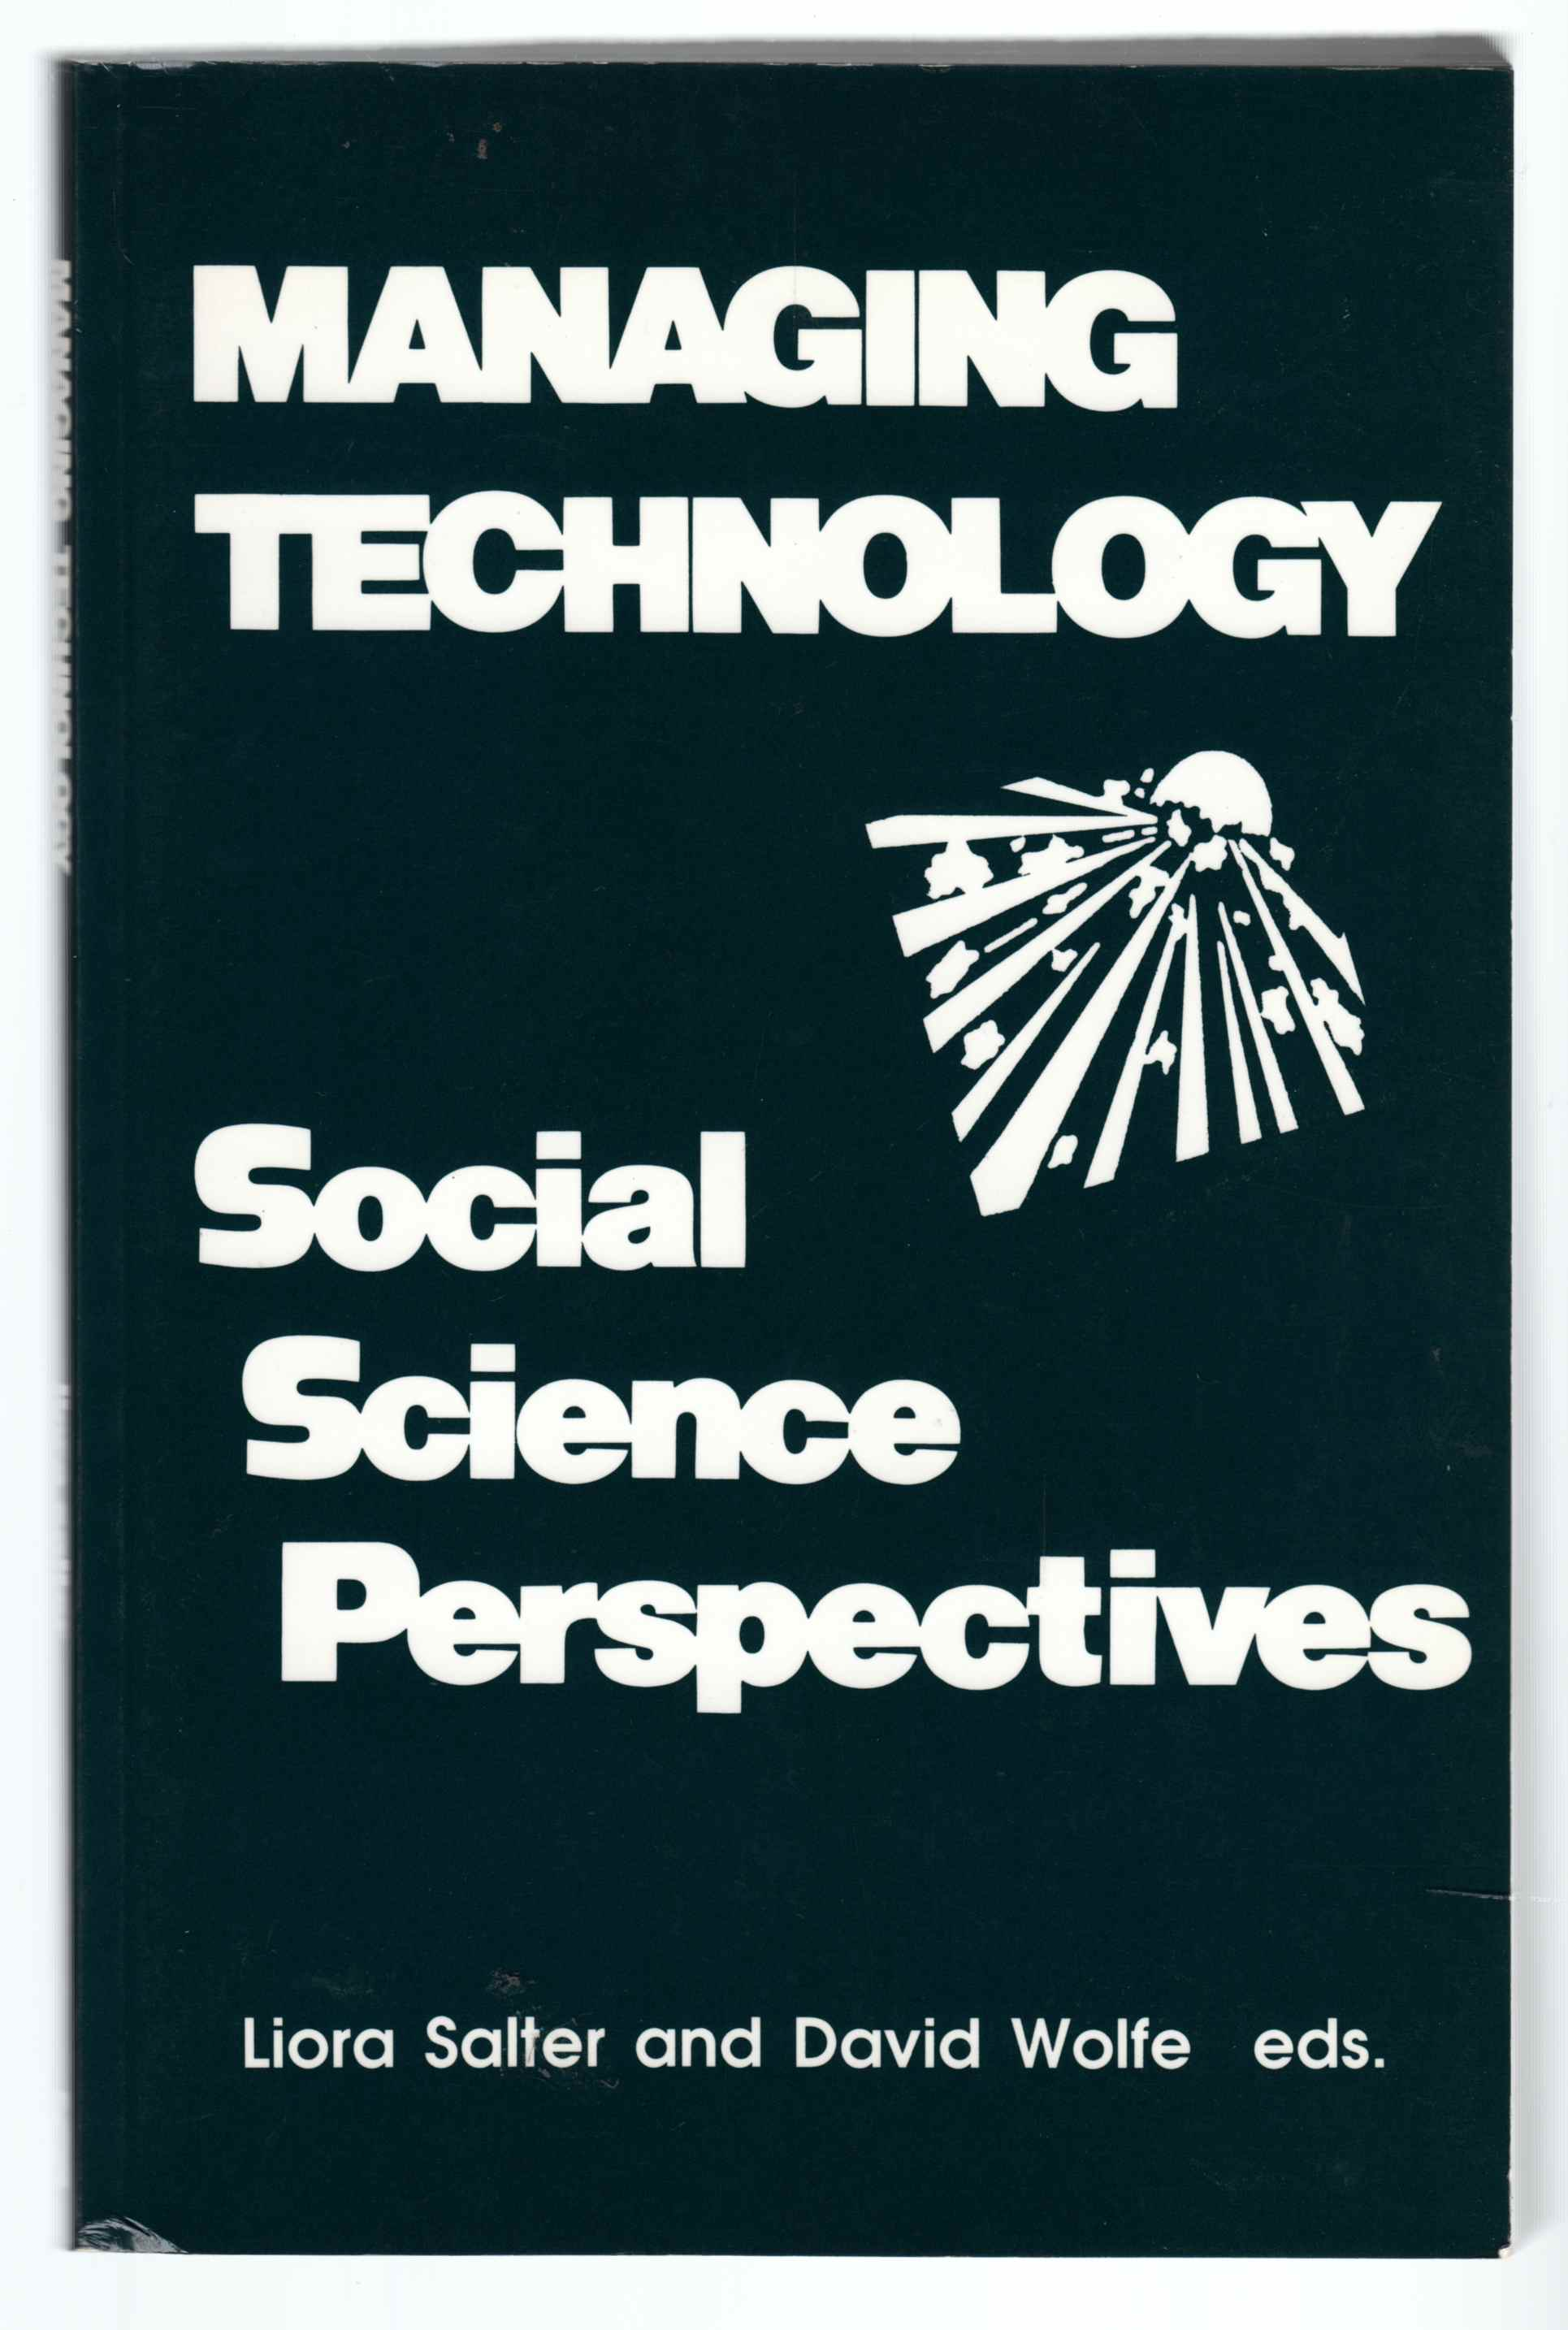 Image for Managing Technology Social Science Perspectives